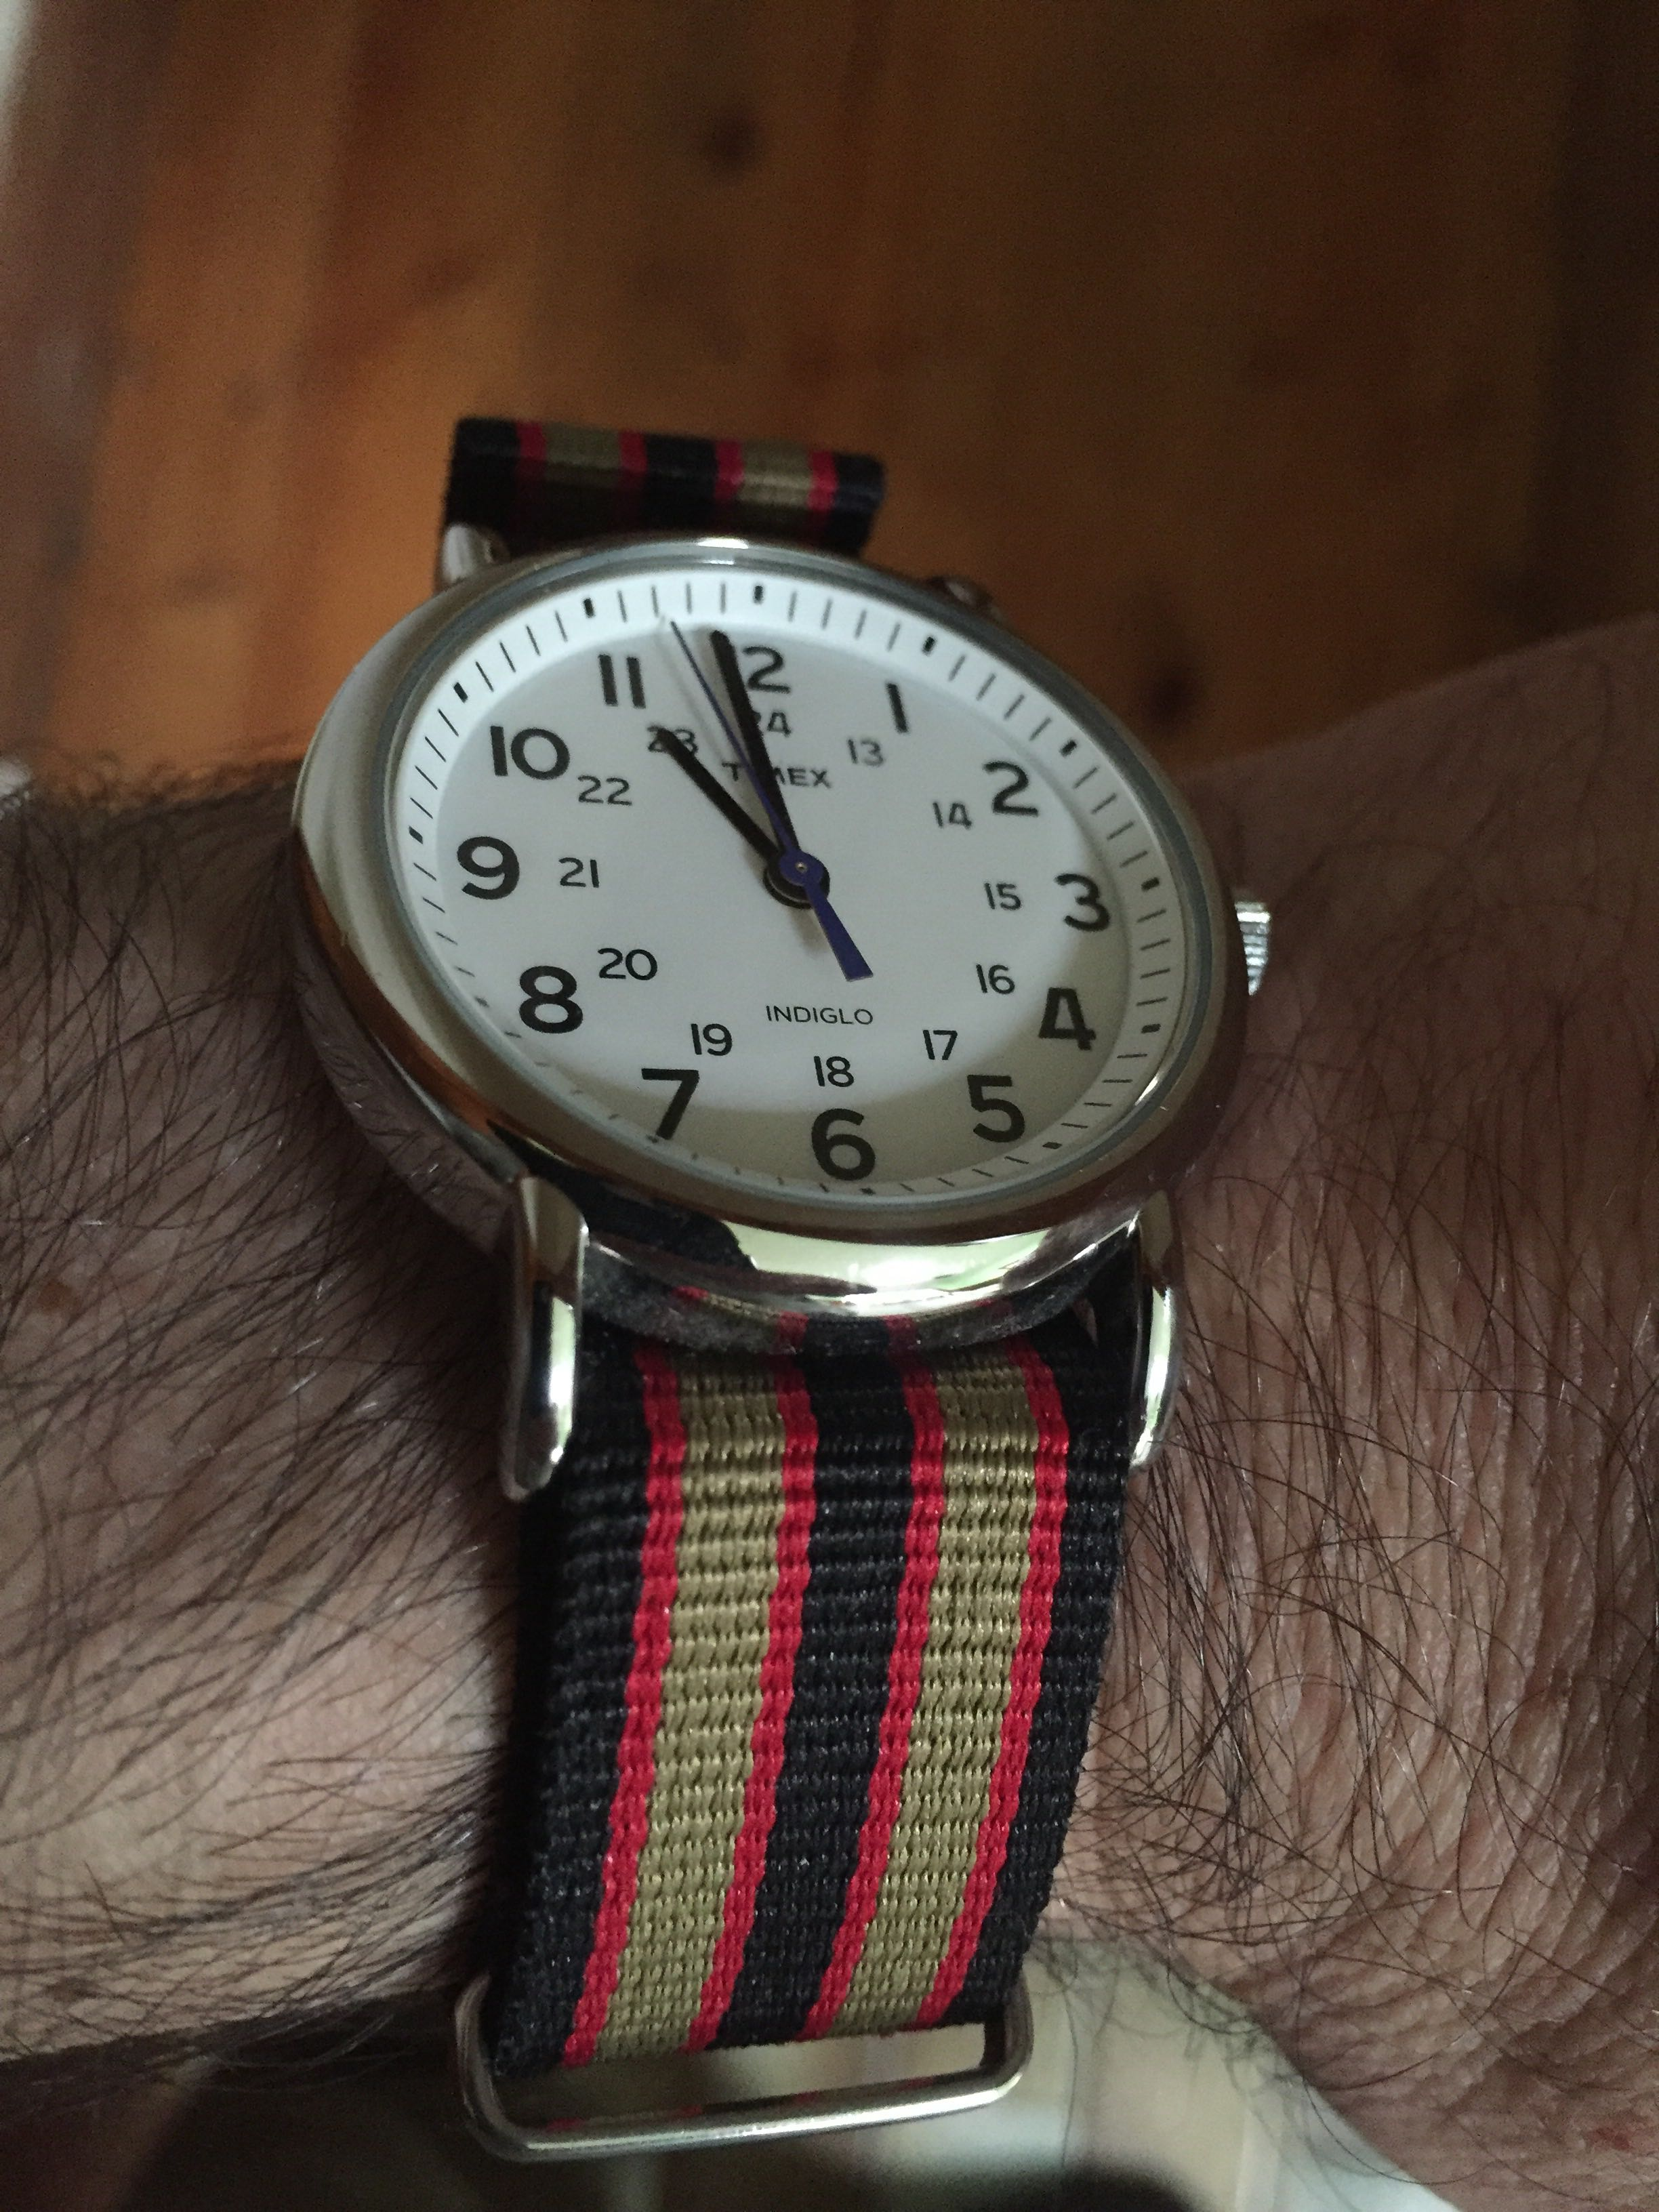 The Ernesto's photos in Poor man's watch thread